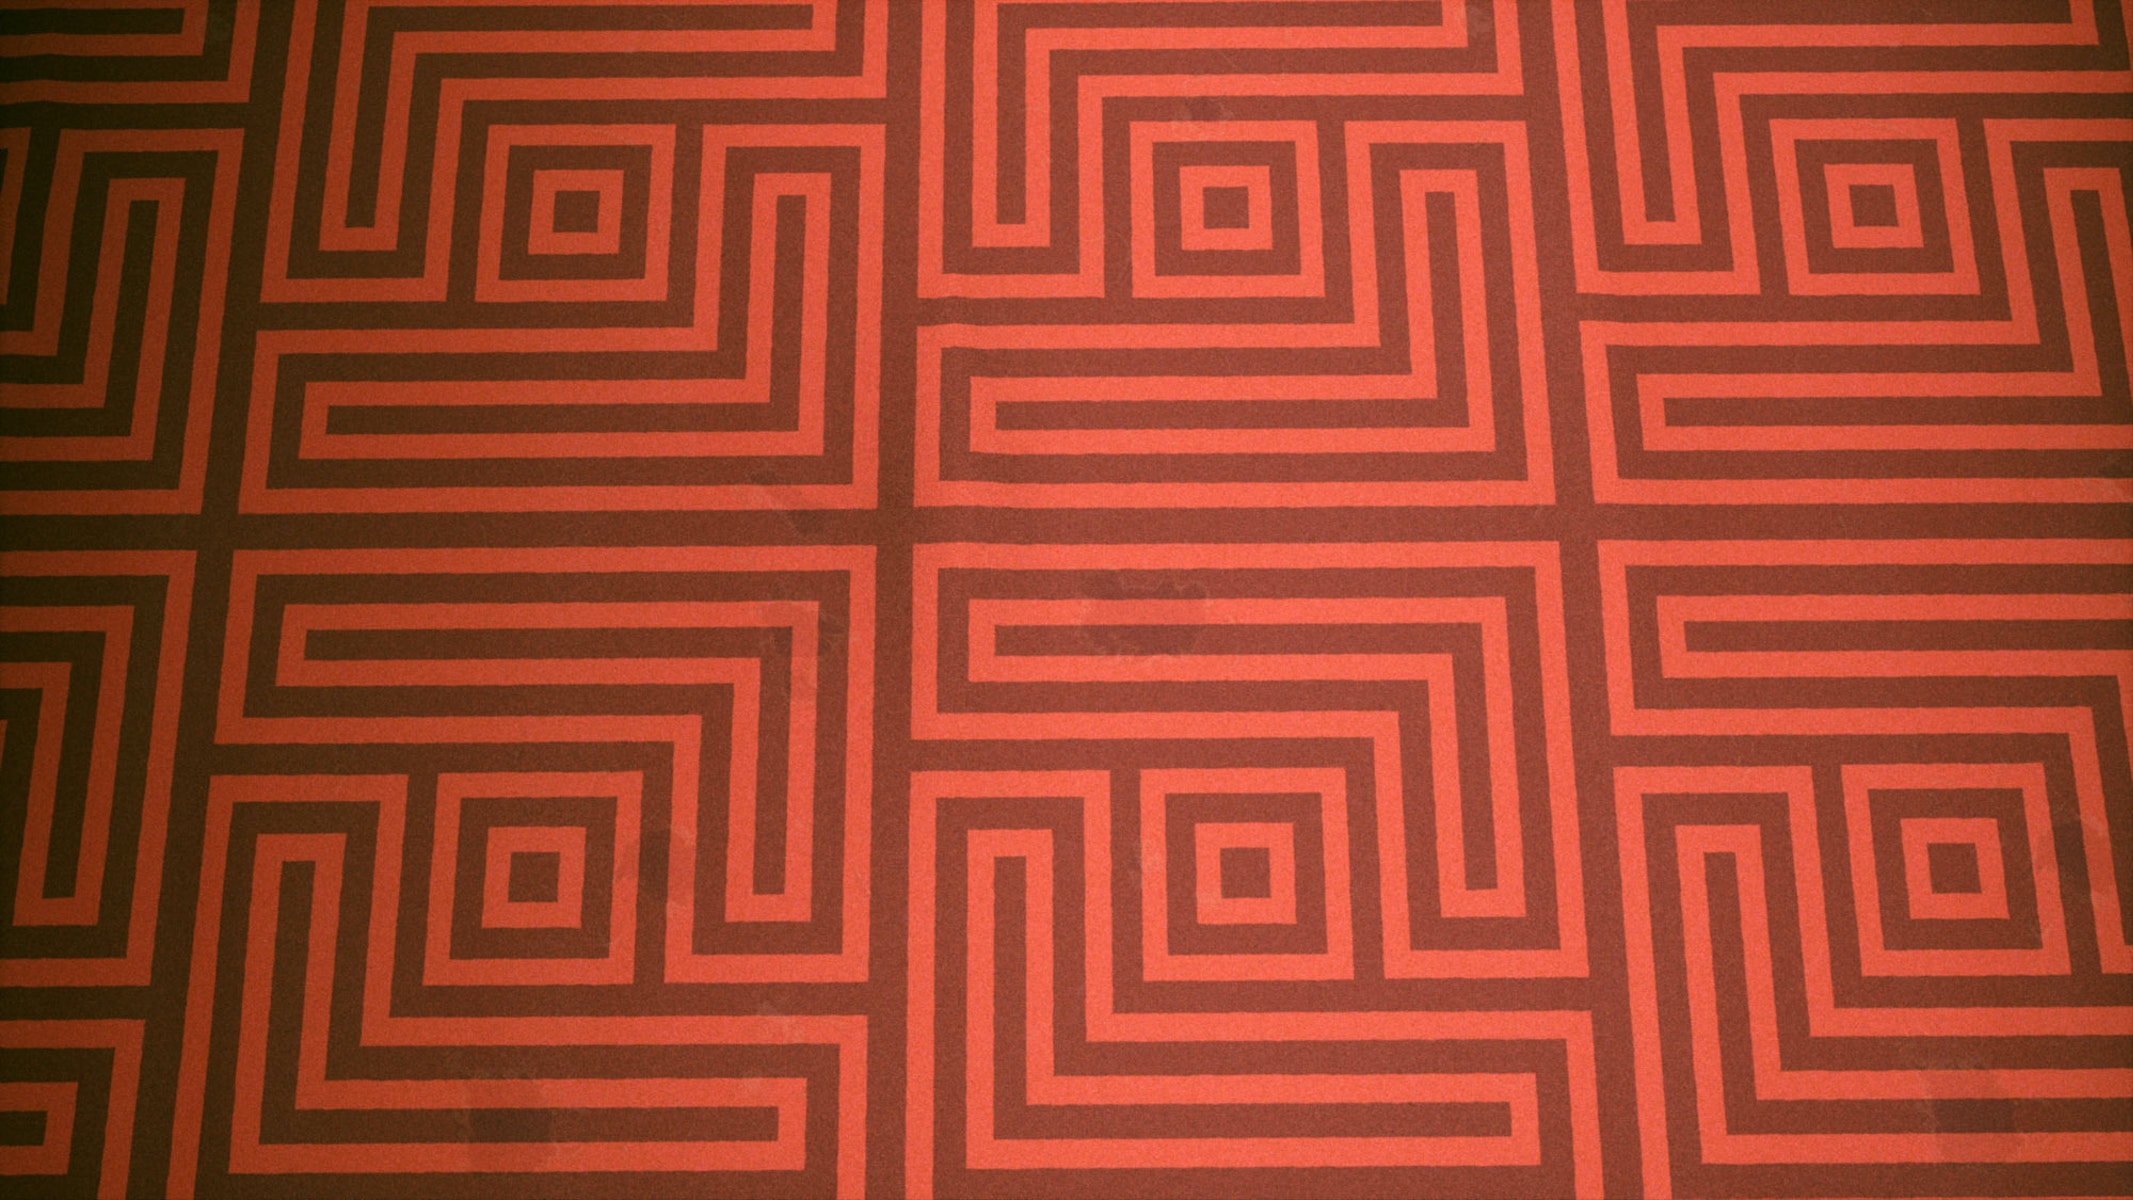 How The Stanley Kubrick Carpet Is Invading Video Games The Face